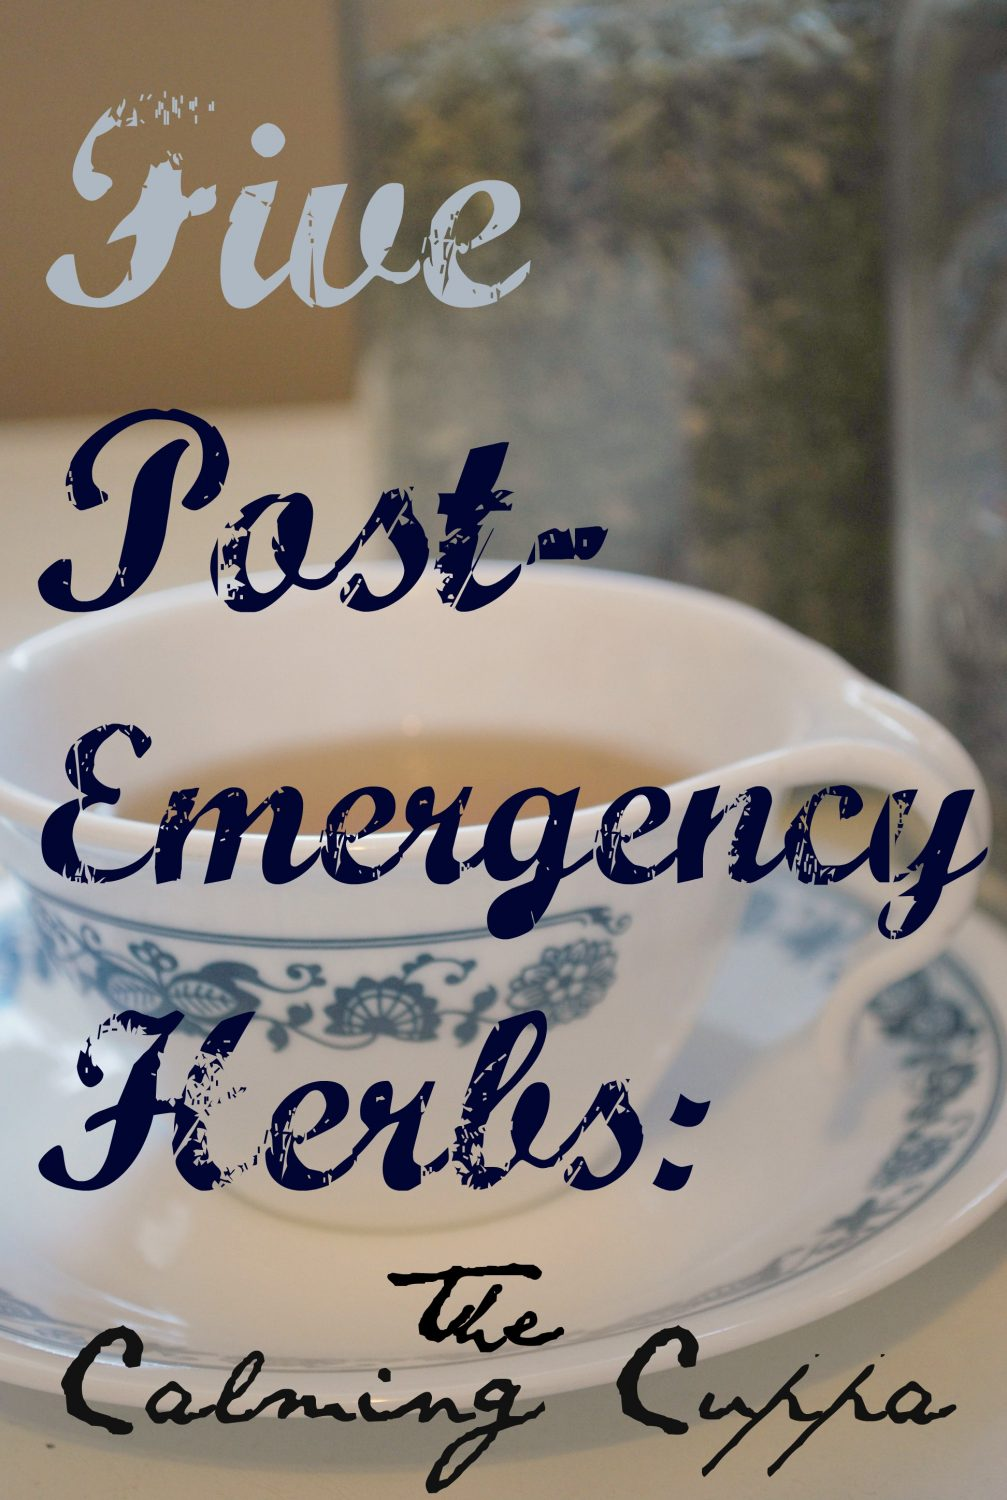 In an emergency, adrenaline fuels us but doesn't just disappear when it ends. In an emergency these 5 herbs can help calm the jitters. | www.TheSurvivalMom.com